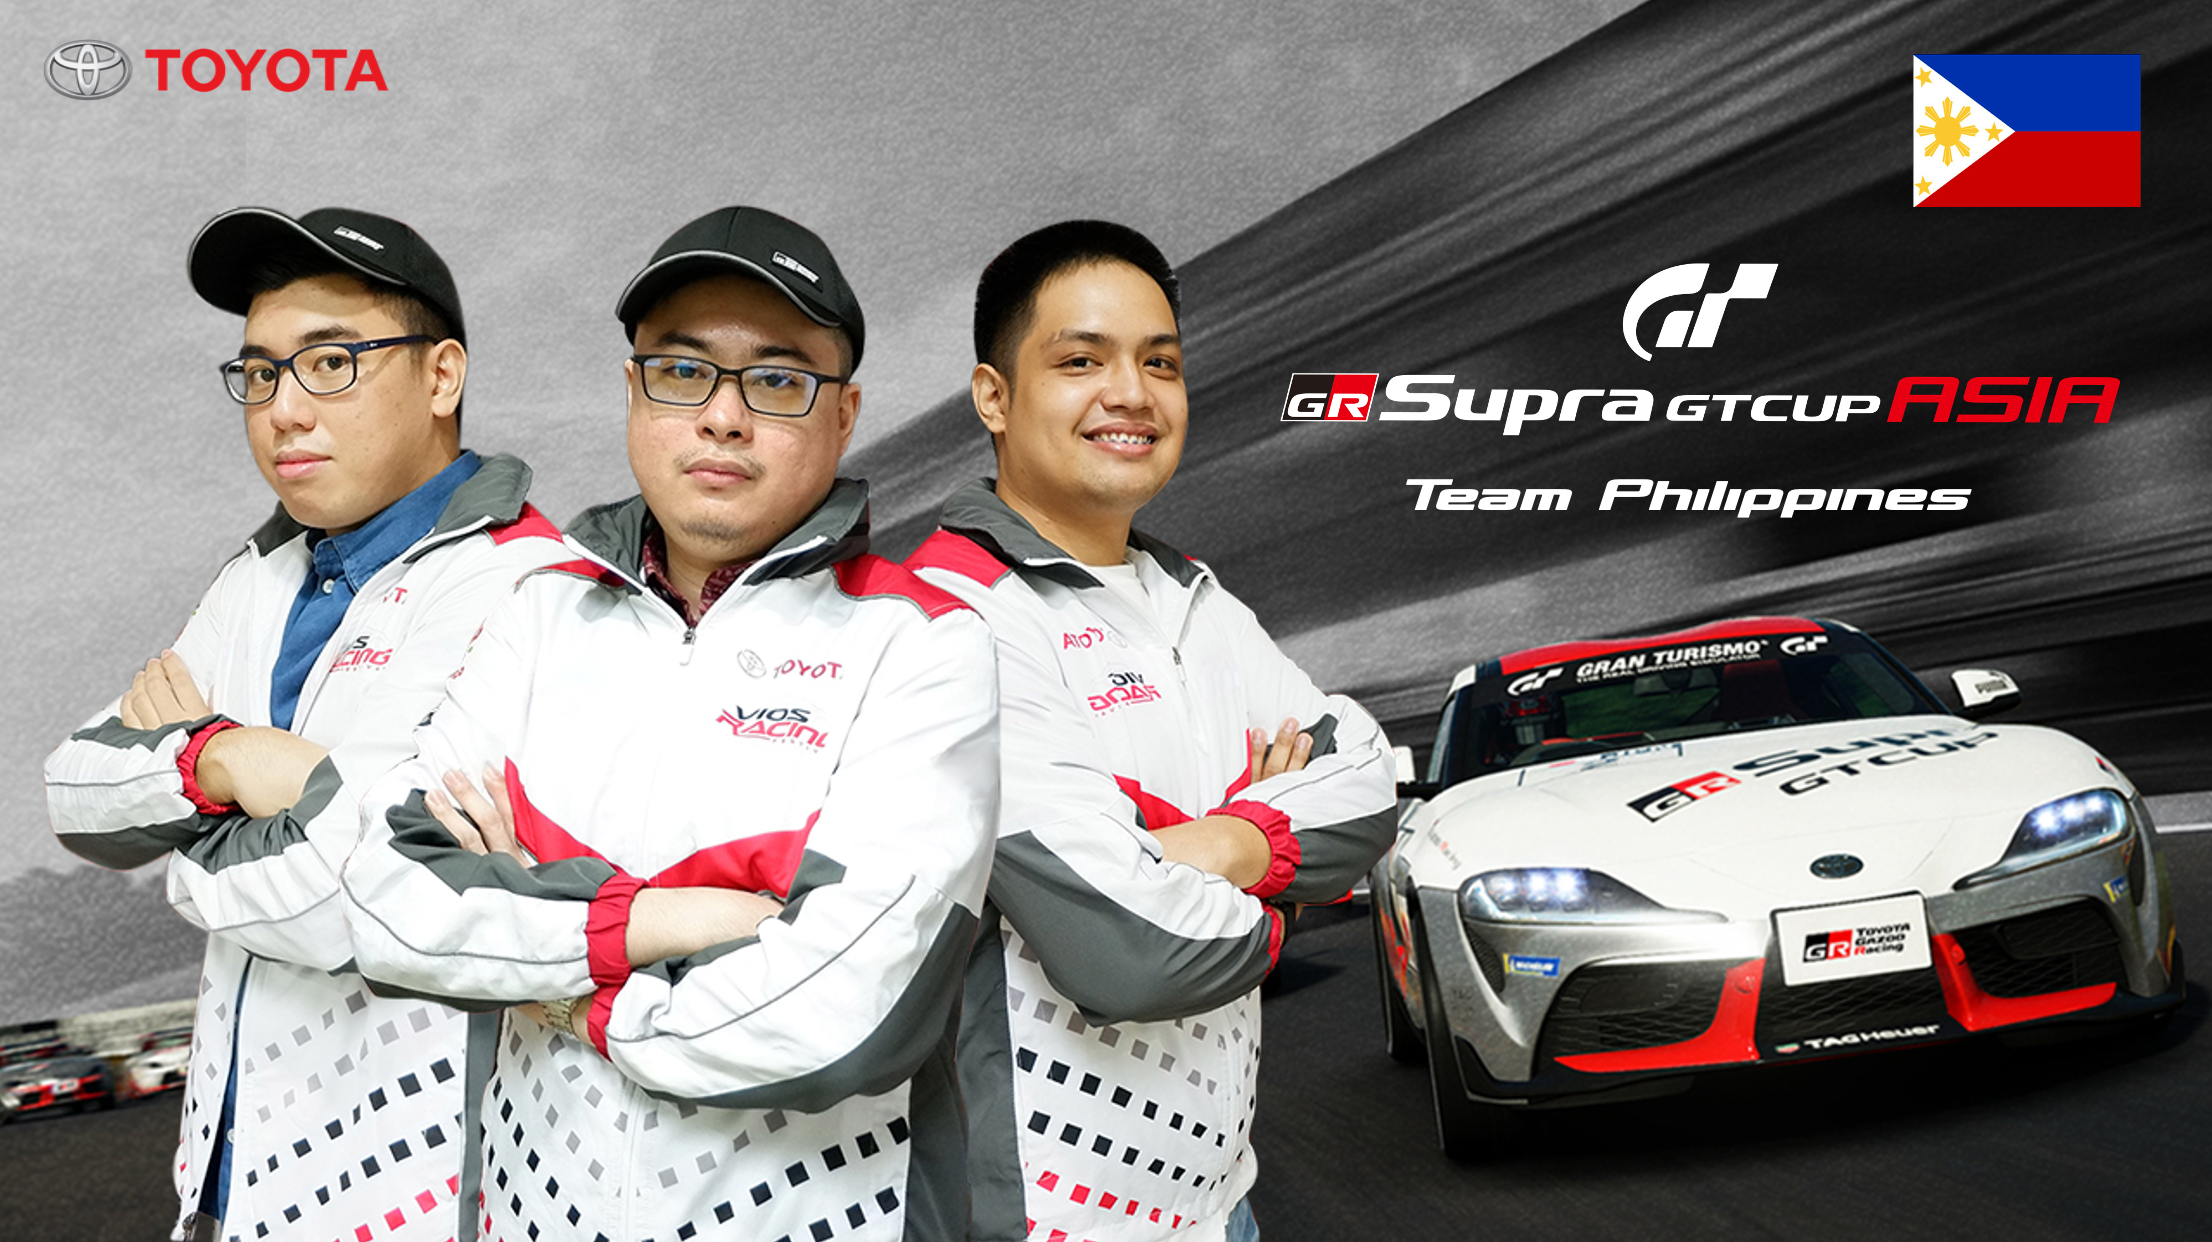 Support Team Philippines at Toyota's GR Supra GT Cup Asia